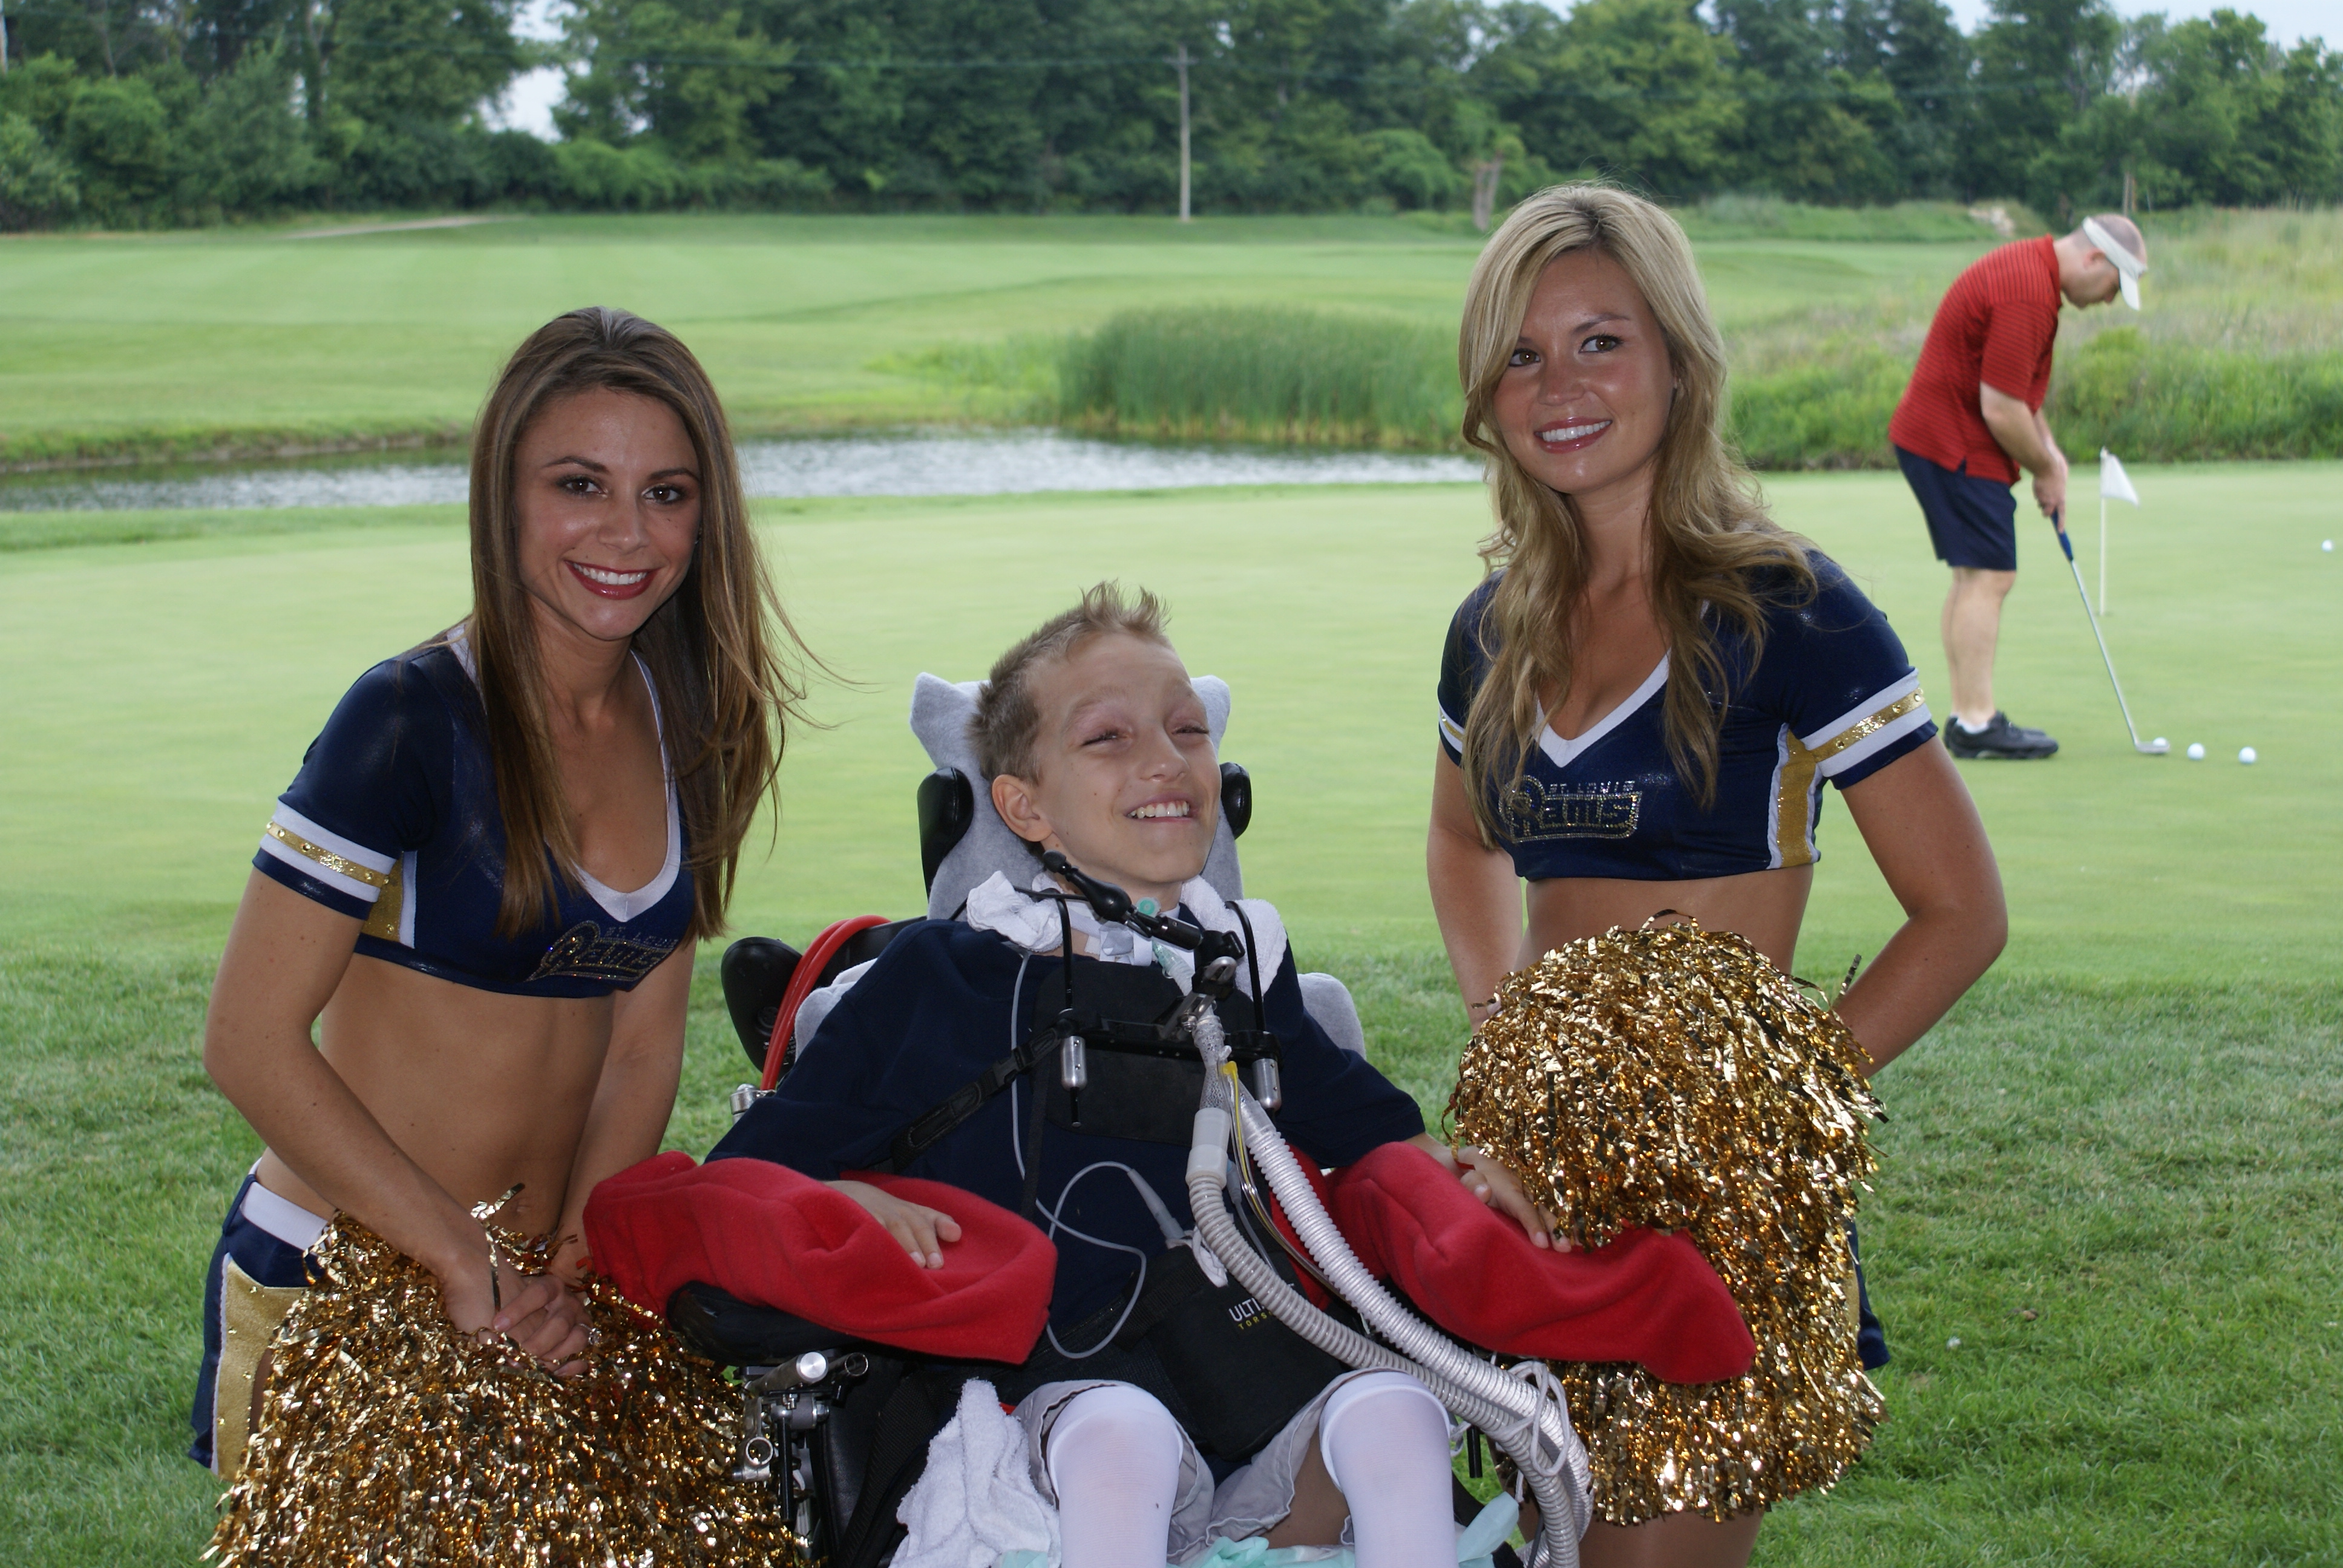 Alex Malarkey with two St. Louis Rams Cheerleaders